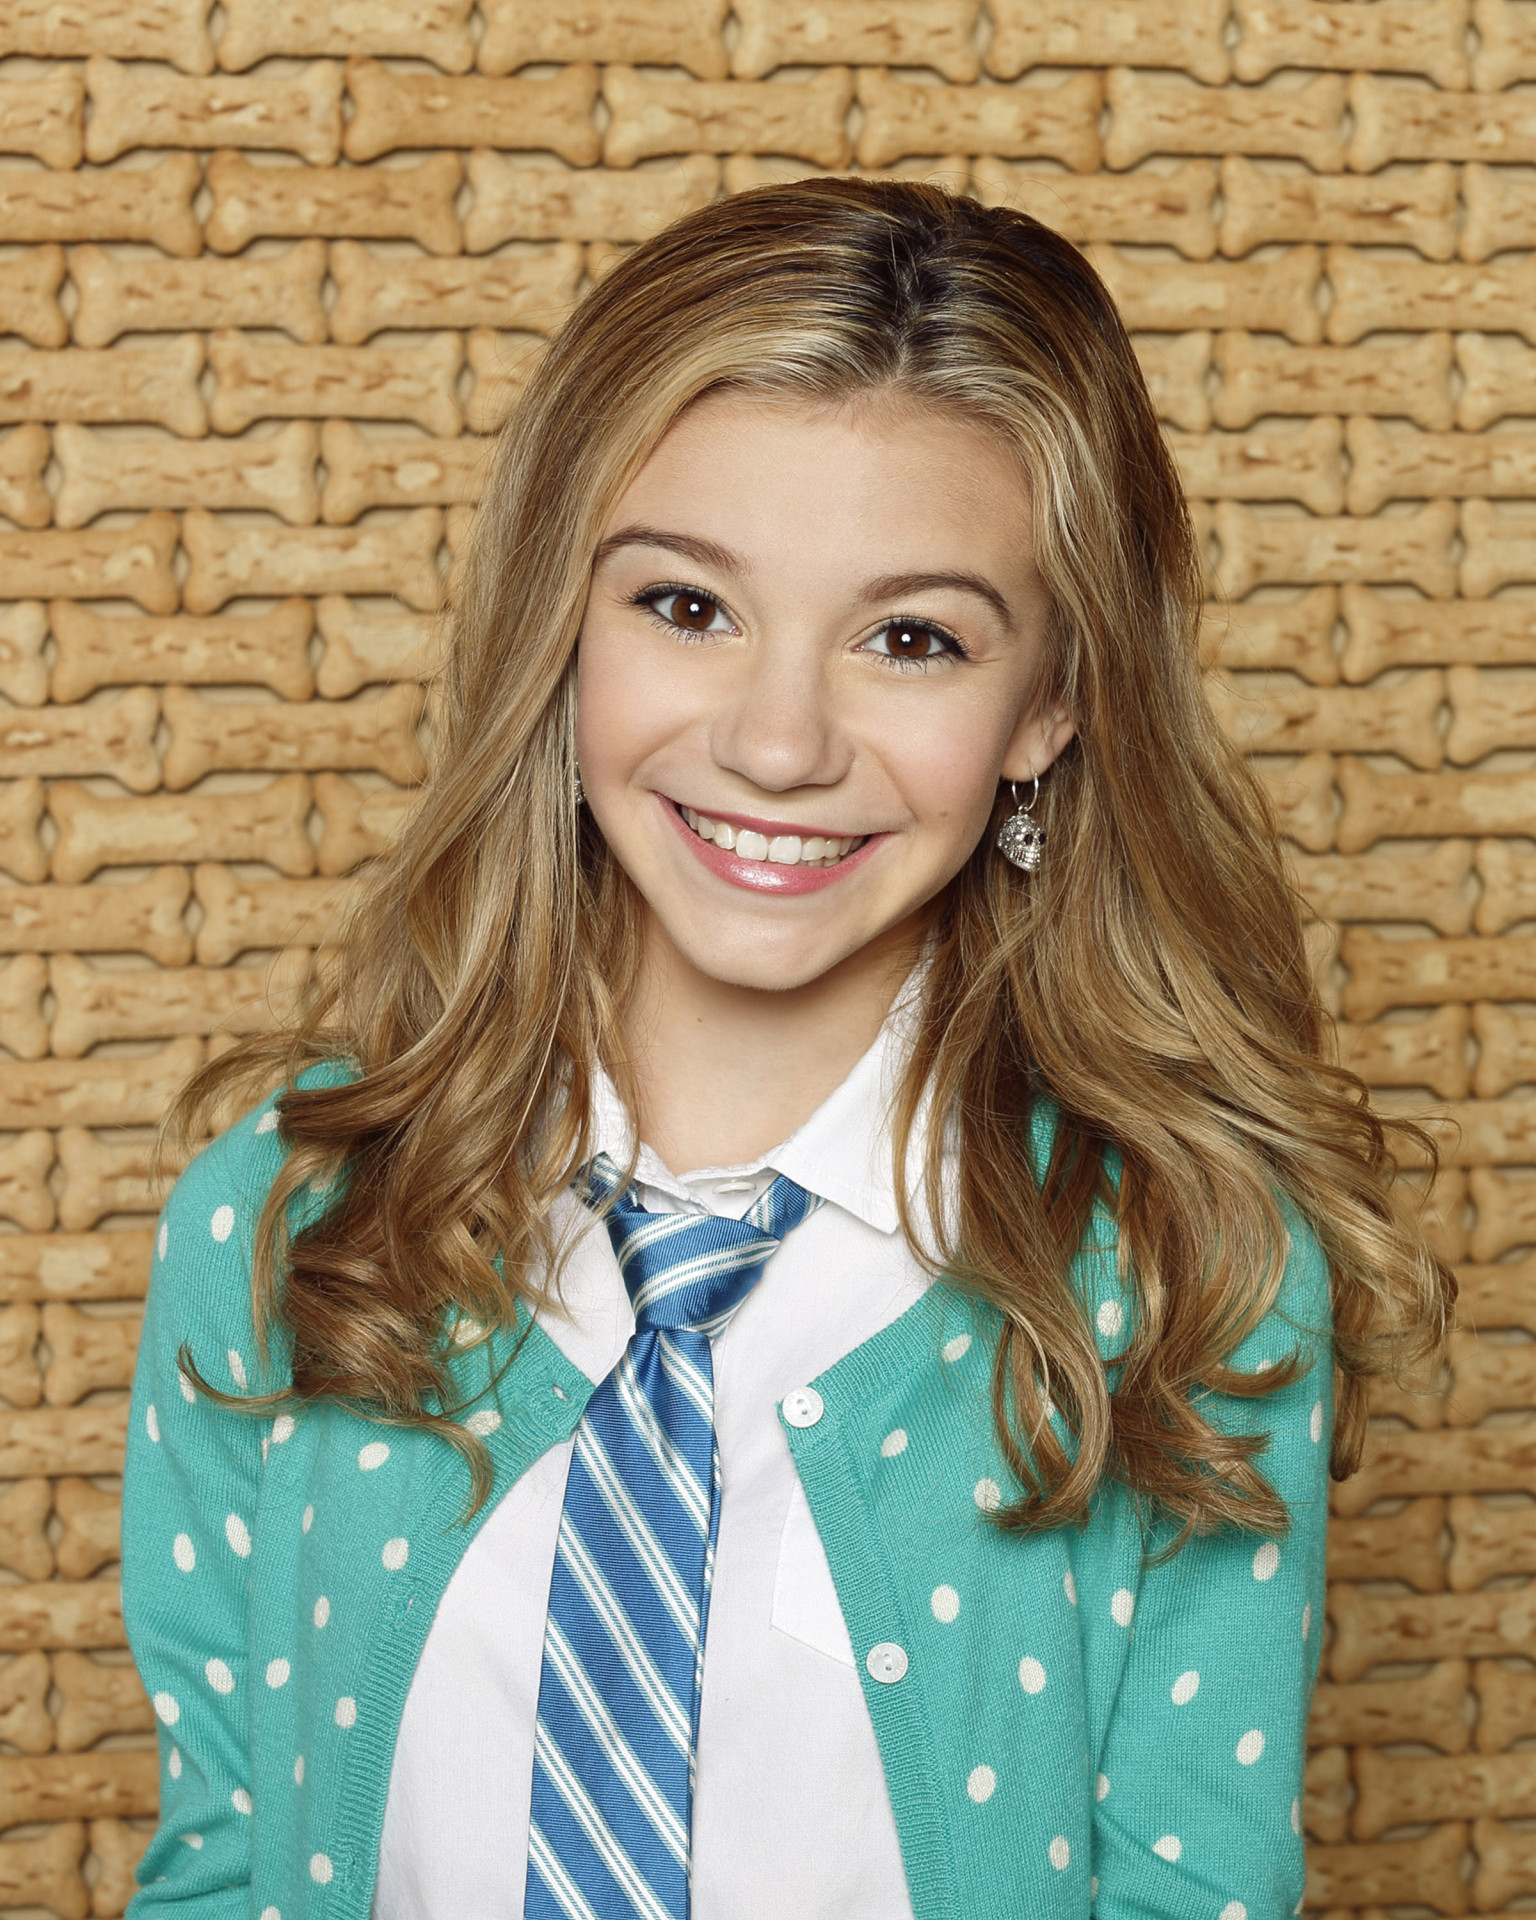 Actress G Hannelius - age: 19